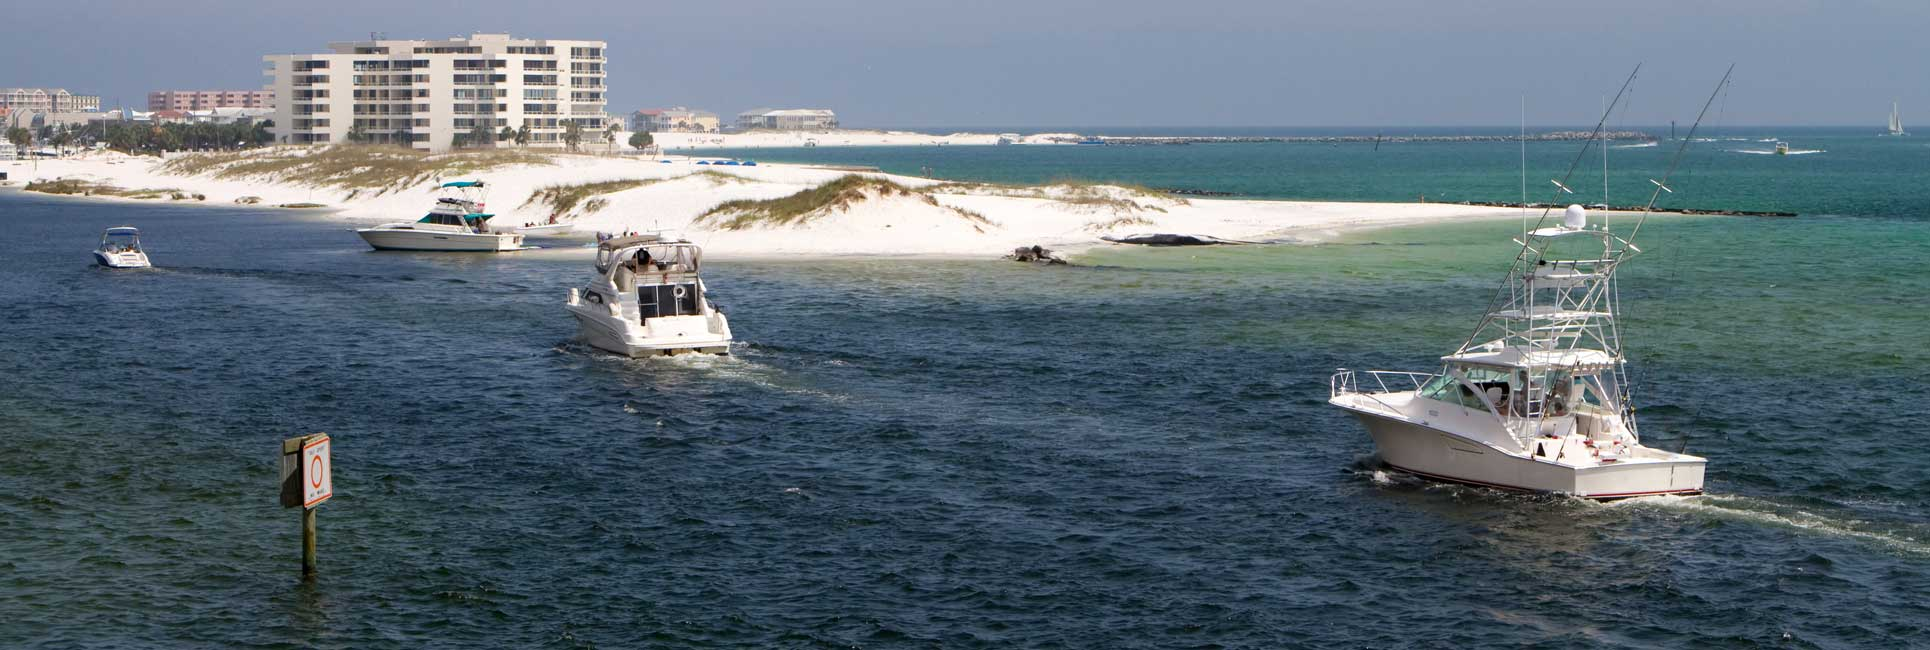 Fishing charter boats returning to the marina in between two sand bars in Destin, Florida.